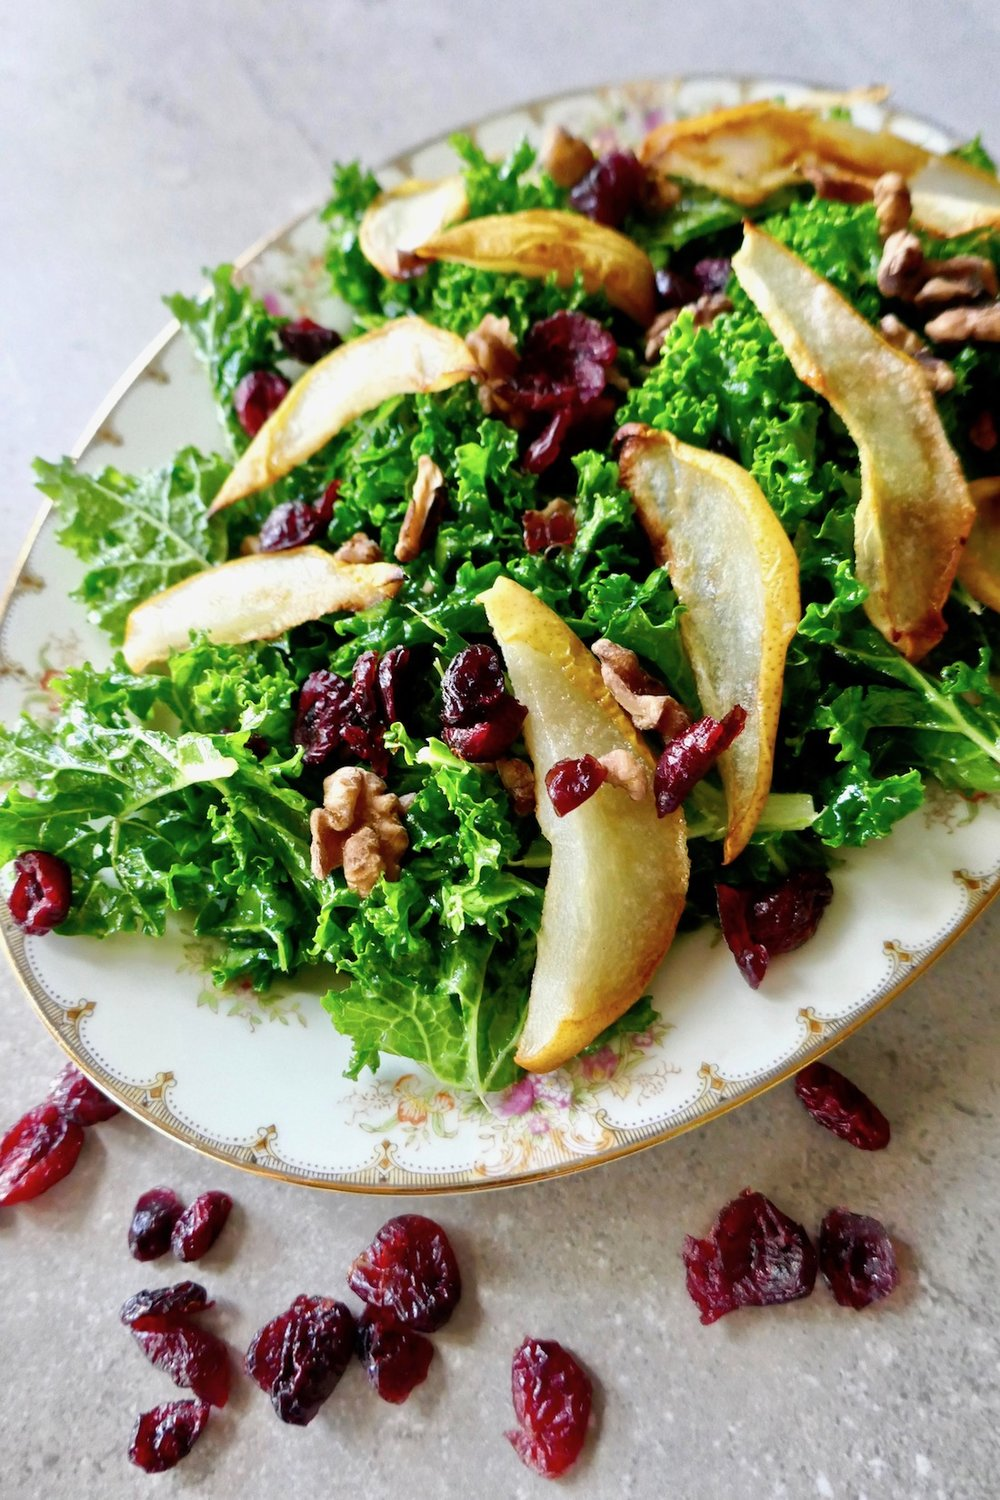 Cranberry pear walnut salad - paleo, vegan, whole30 friendly and great for a holiday dinner | TastingPage.com